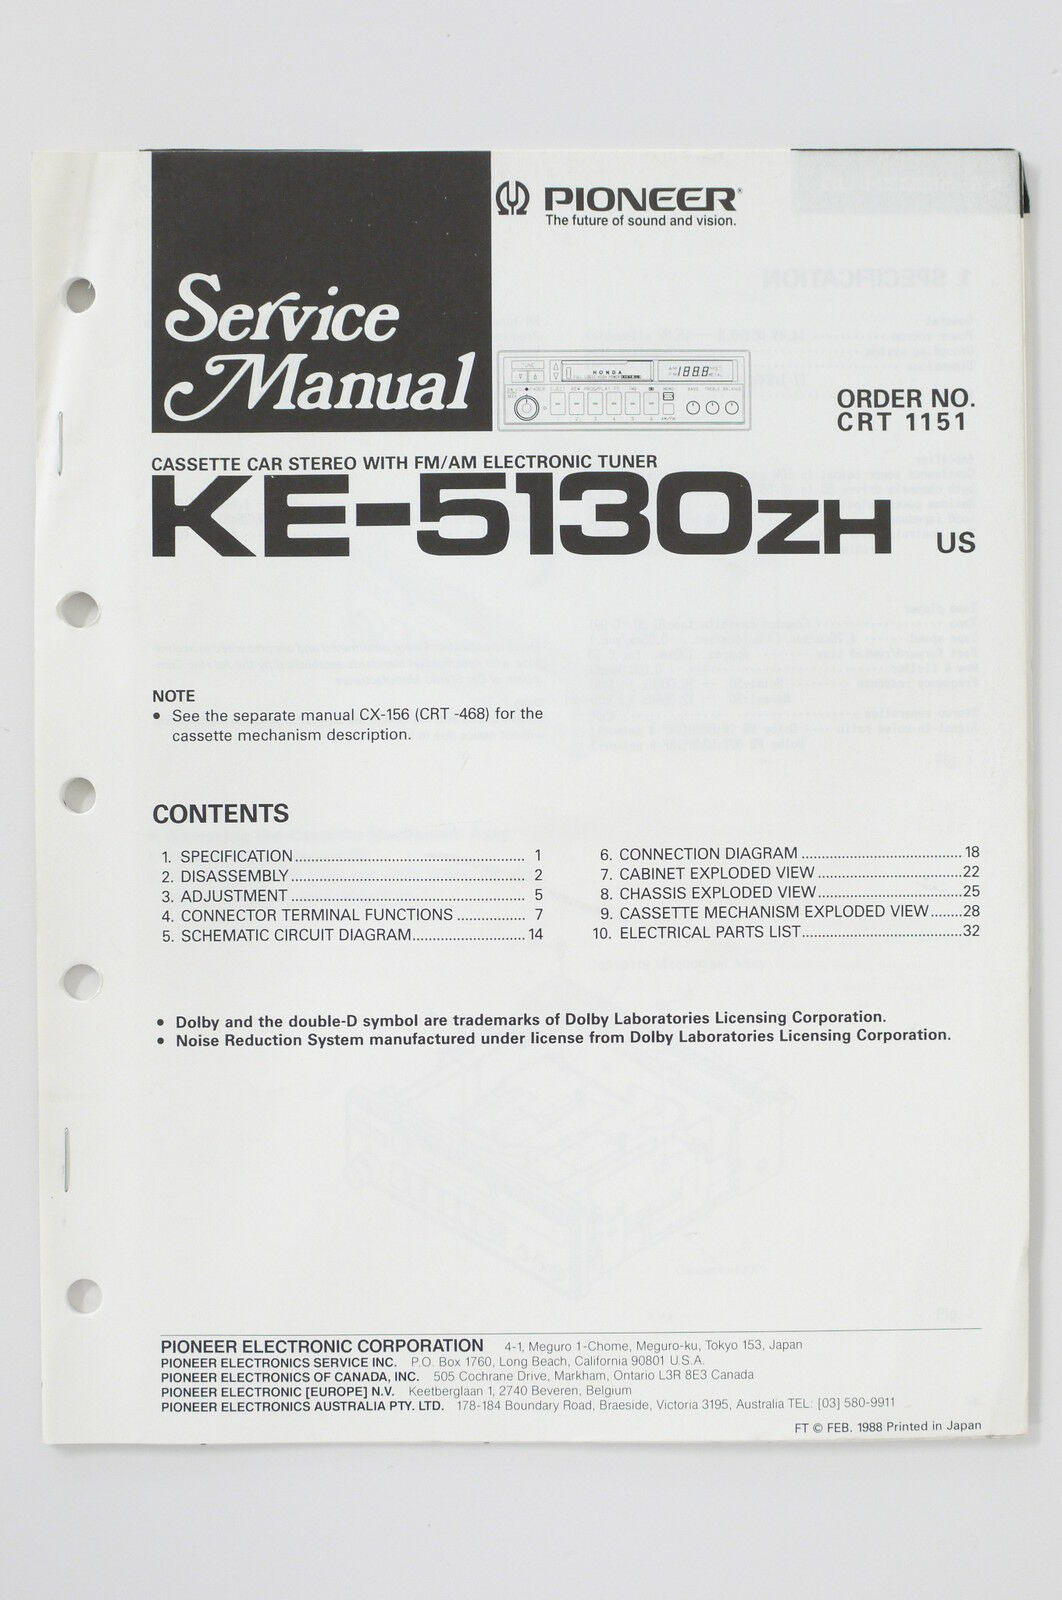 Pioneer Electronics Wiring Diagram Detailed Schematics Avic F700bt Ke 5130 Zh Original Service Manual Guide Polk Audio